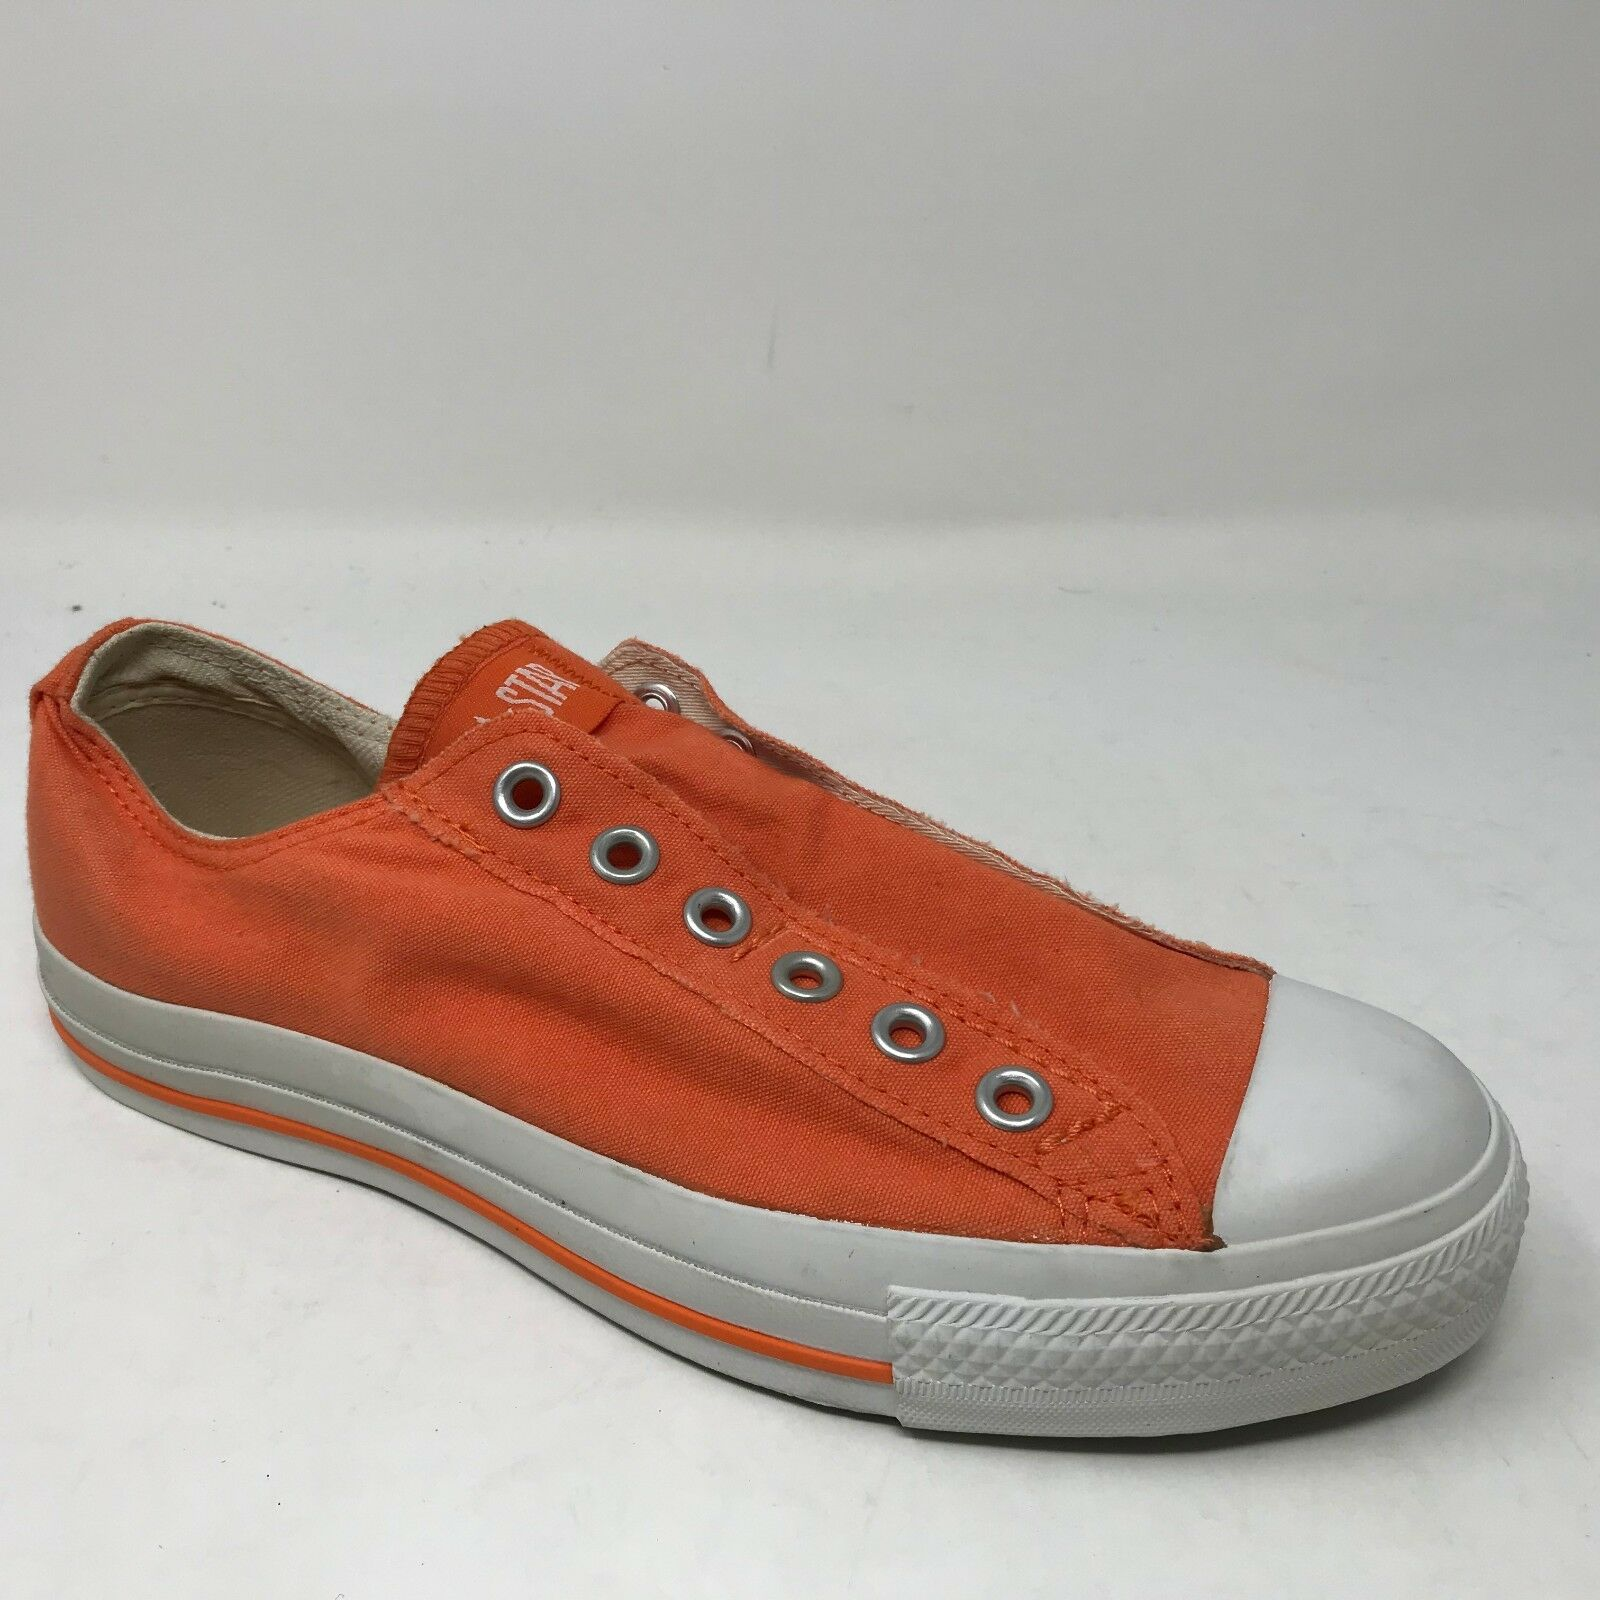 88e8e232d49b5 New New New Vintage Converse CT All Star Slip OX 1T416 Men Size 6 Women  Size 8 c5be38